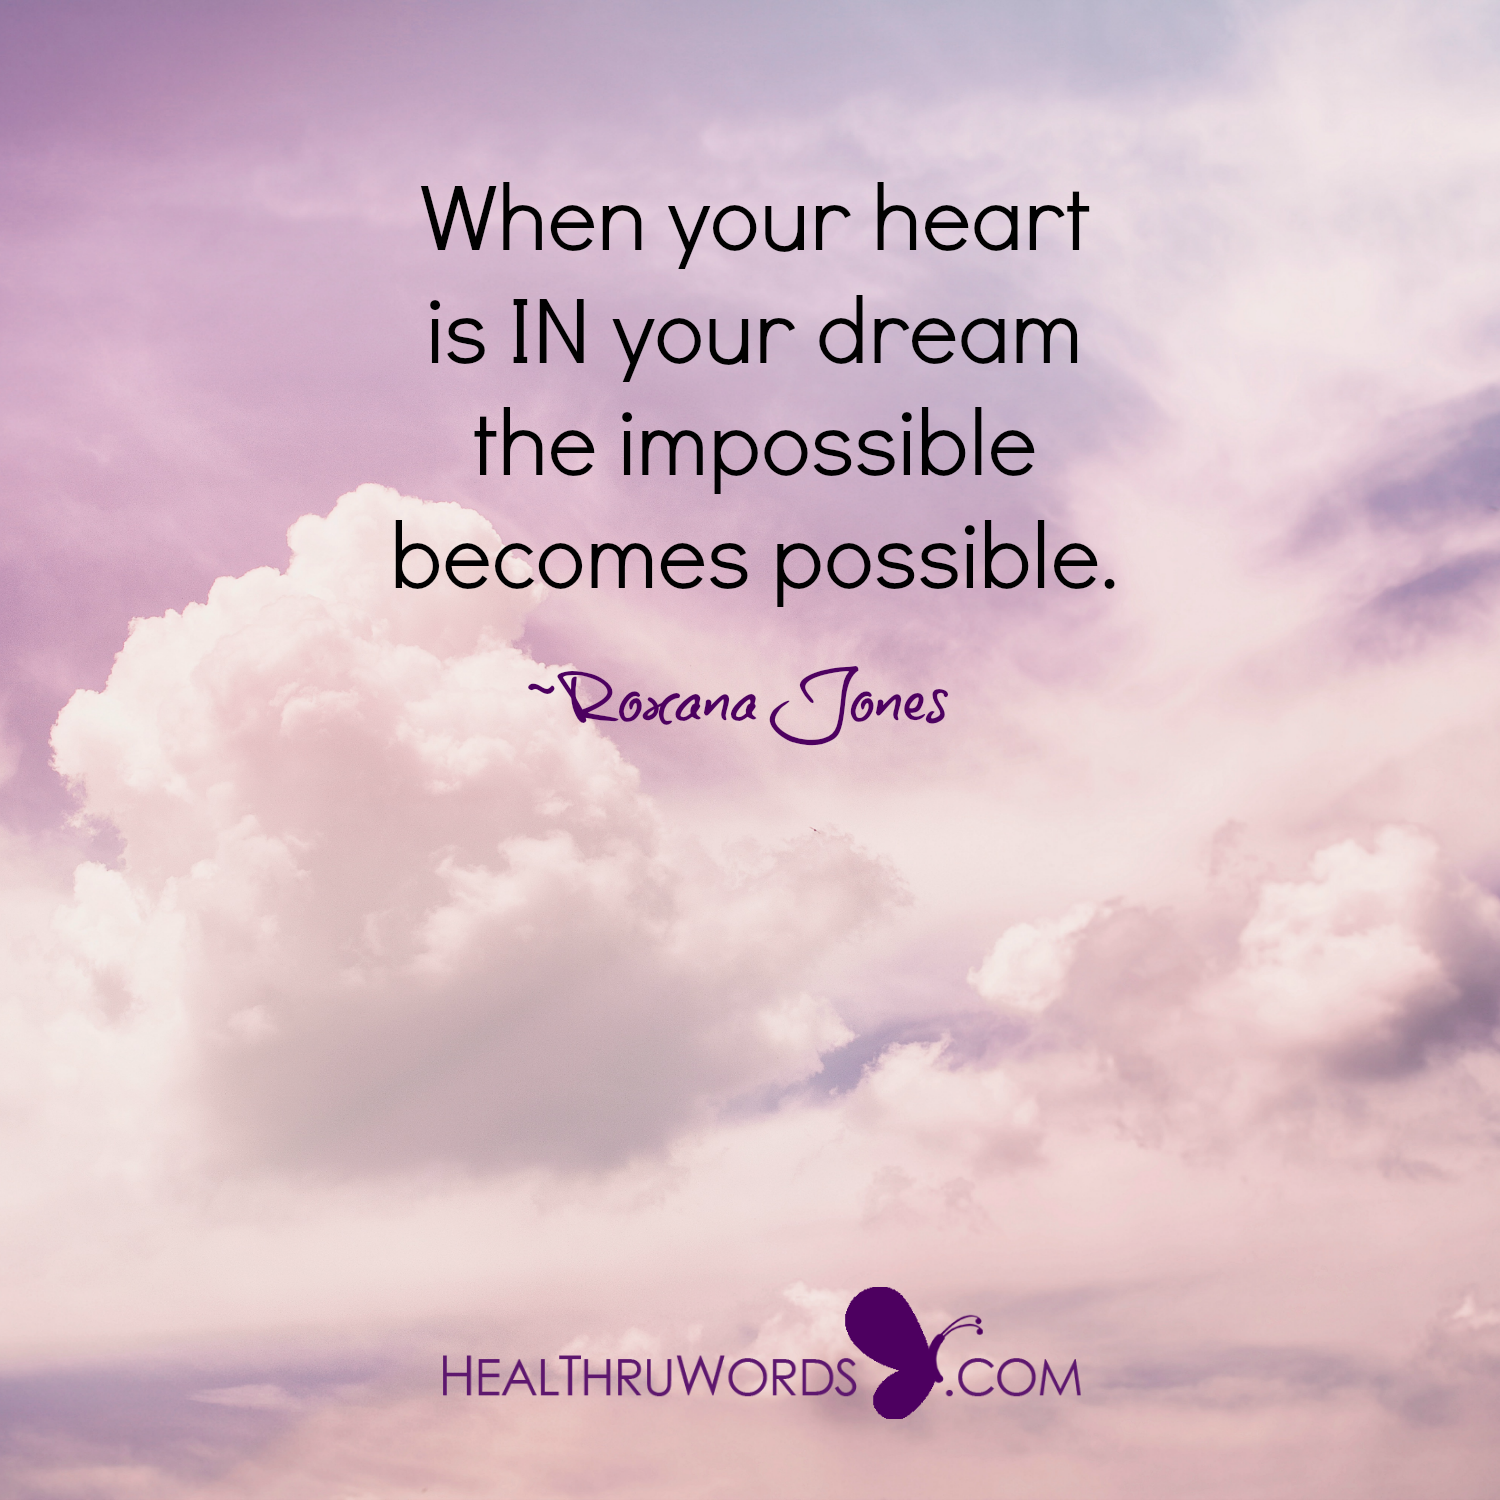 Inspirational Image: A Heartful Dream